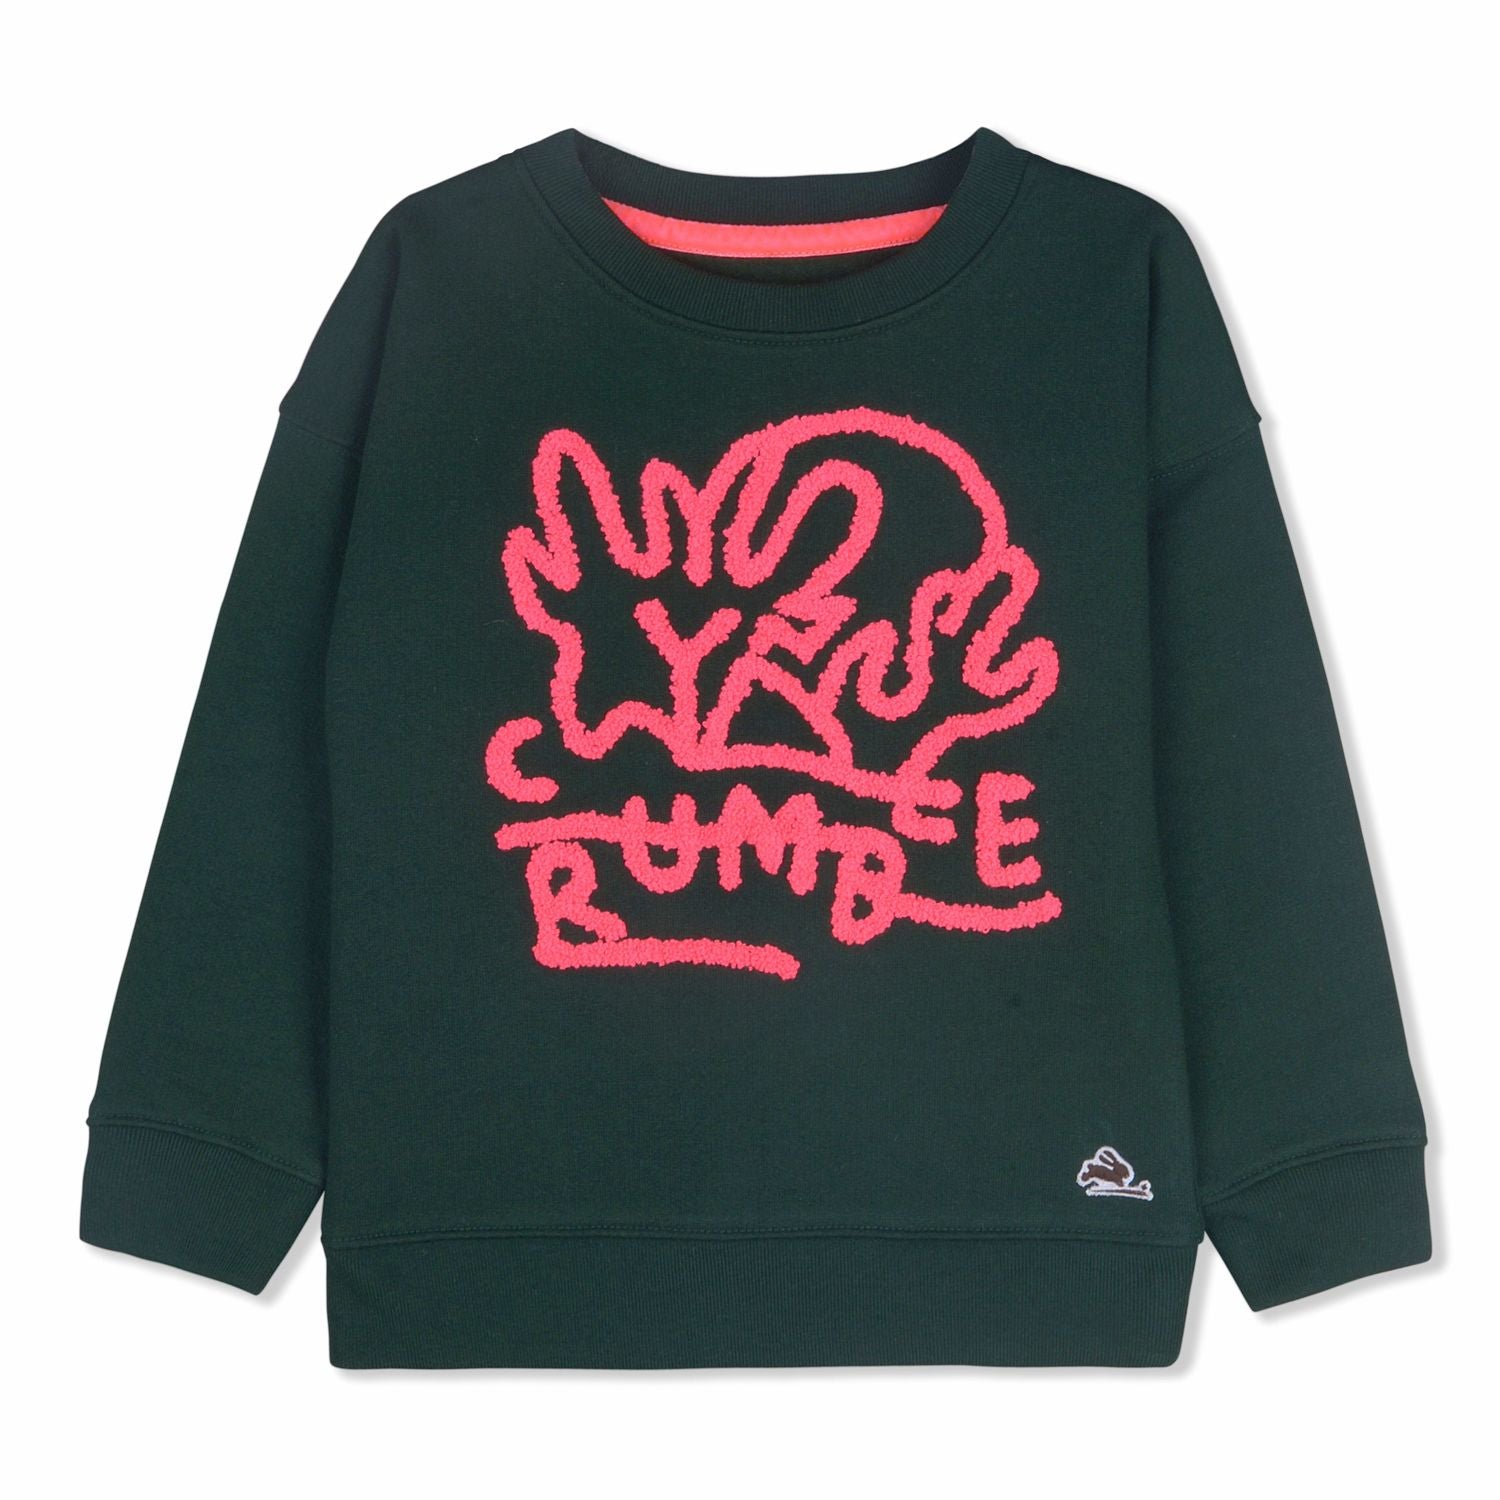 Icon Sweatshirt for kids